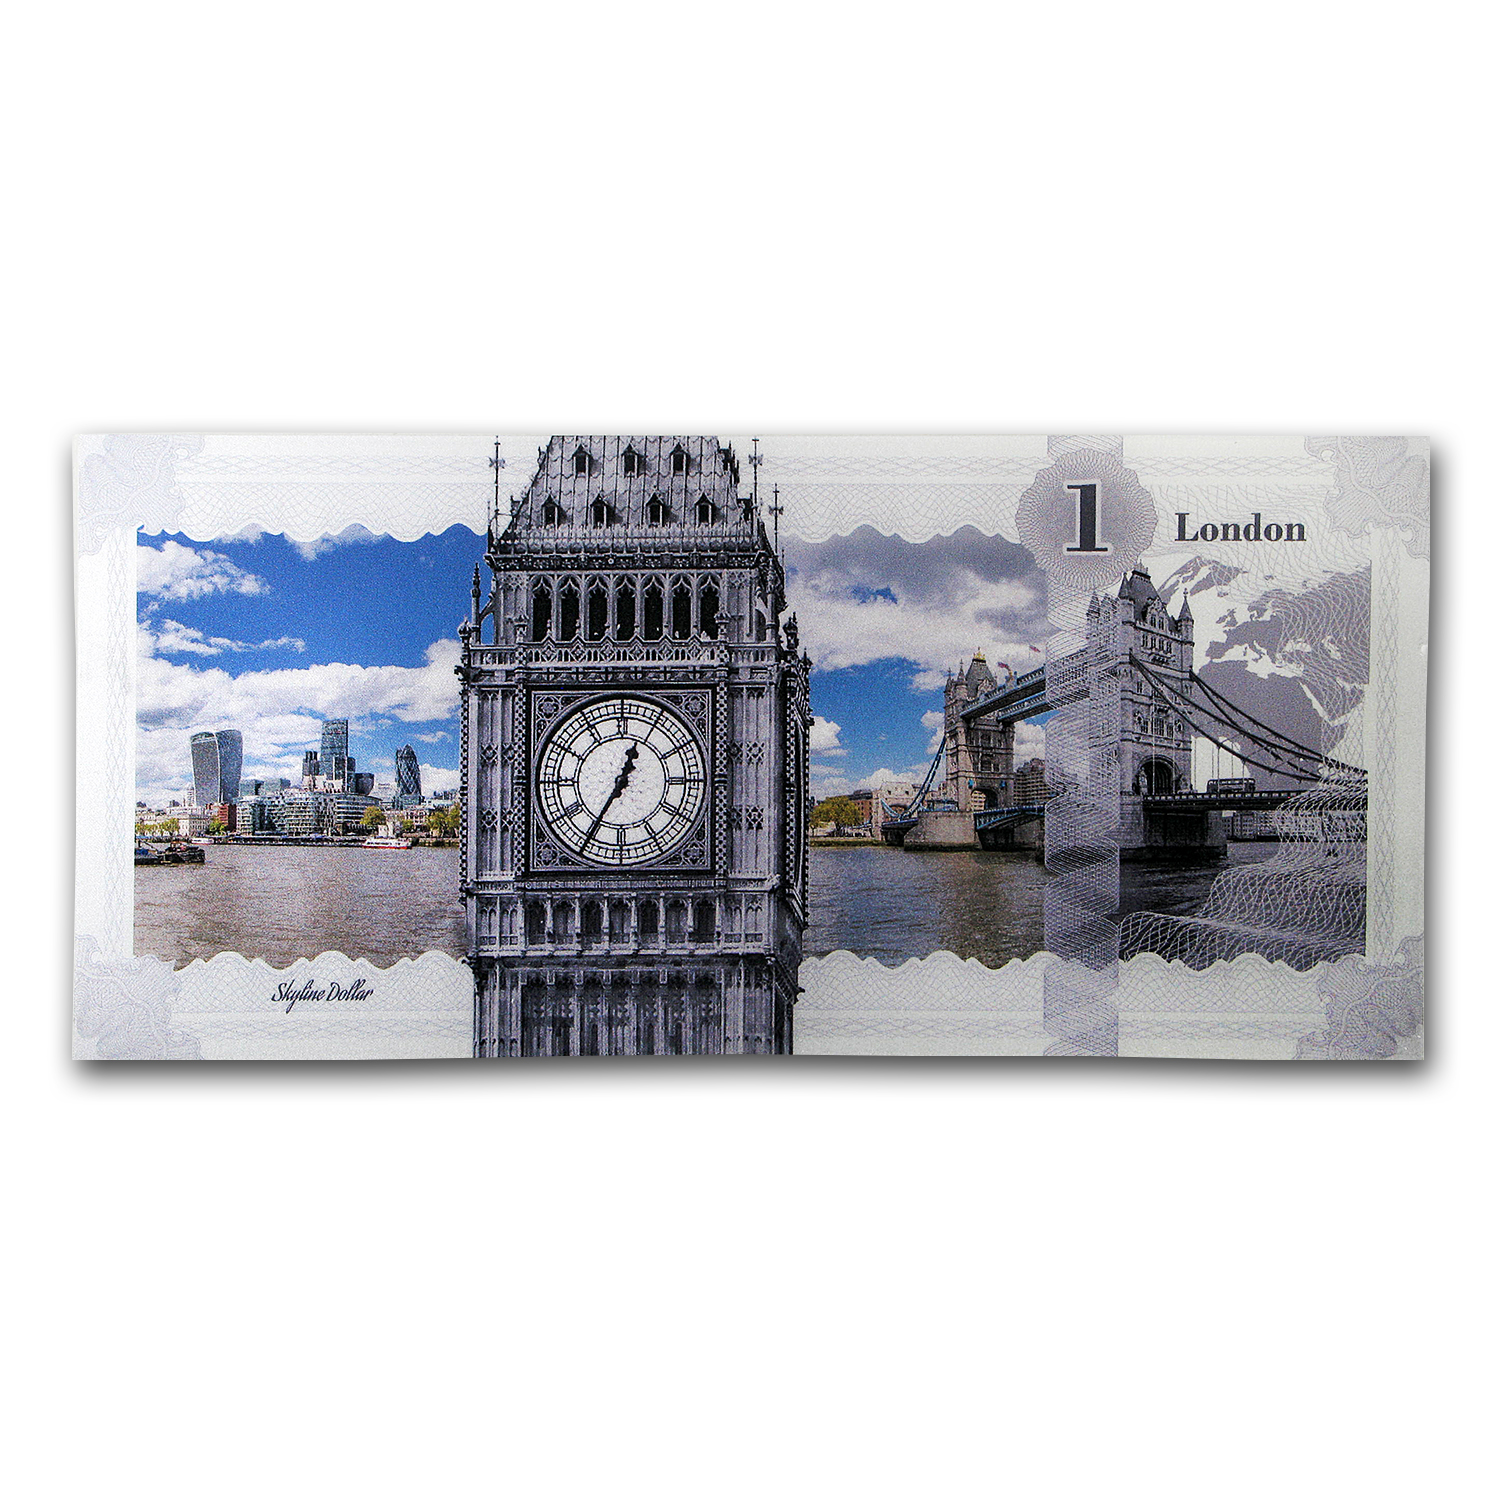 2017 Cook Islands Skyline Dollars Foil Silver Note (London)